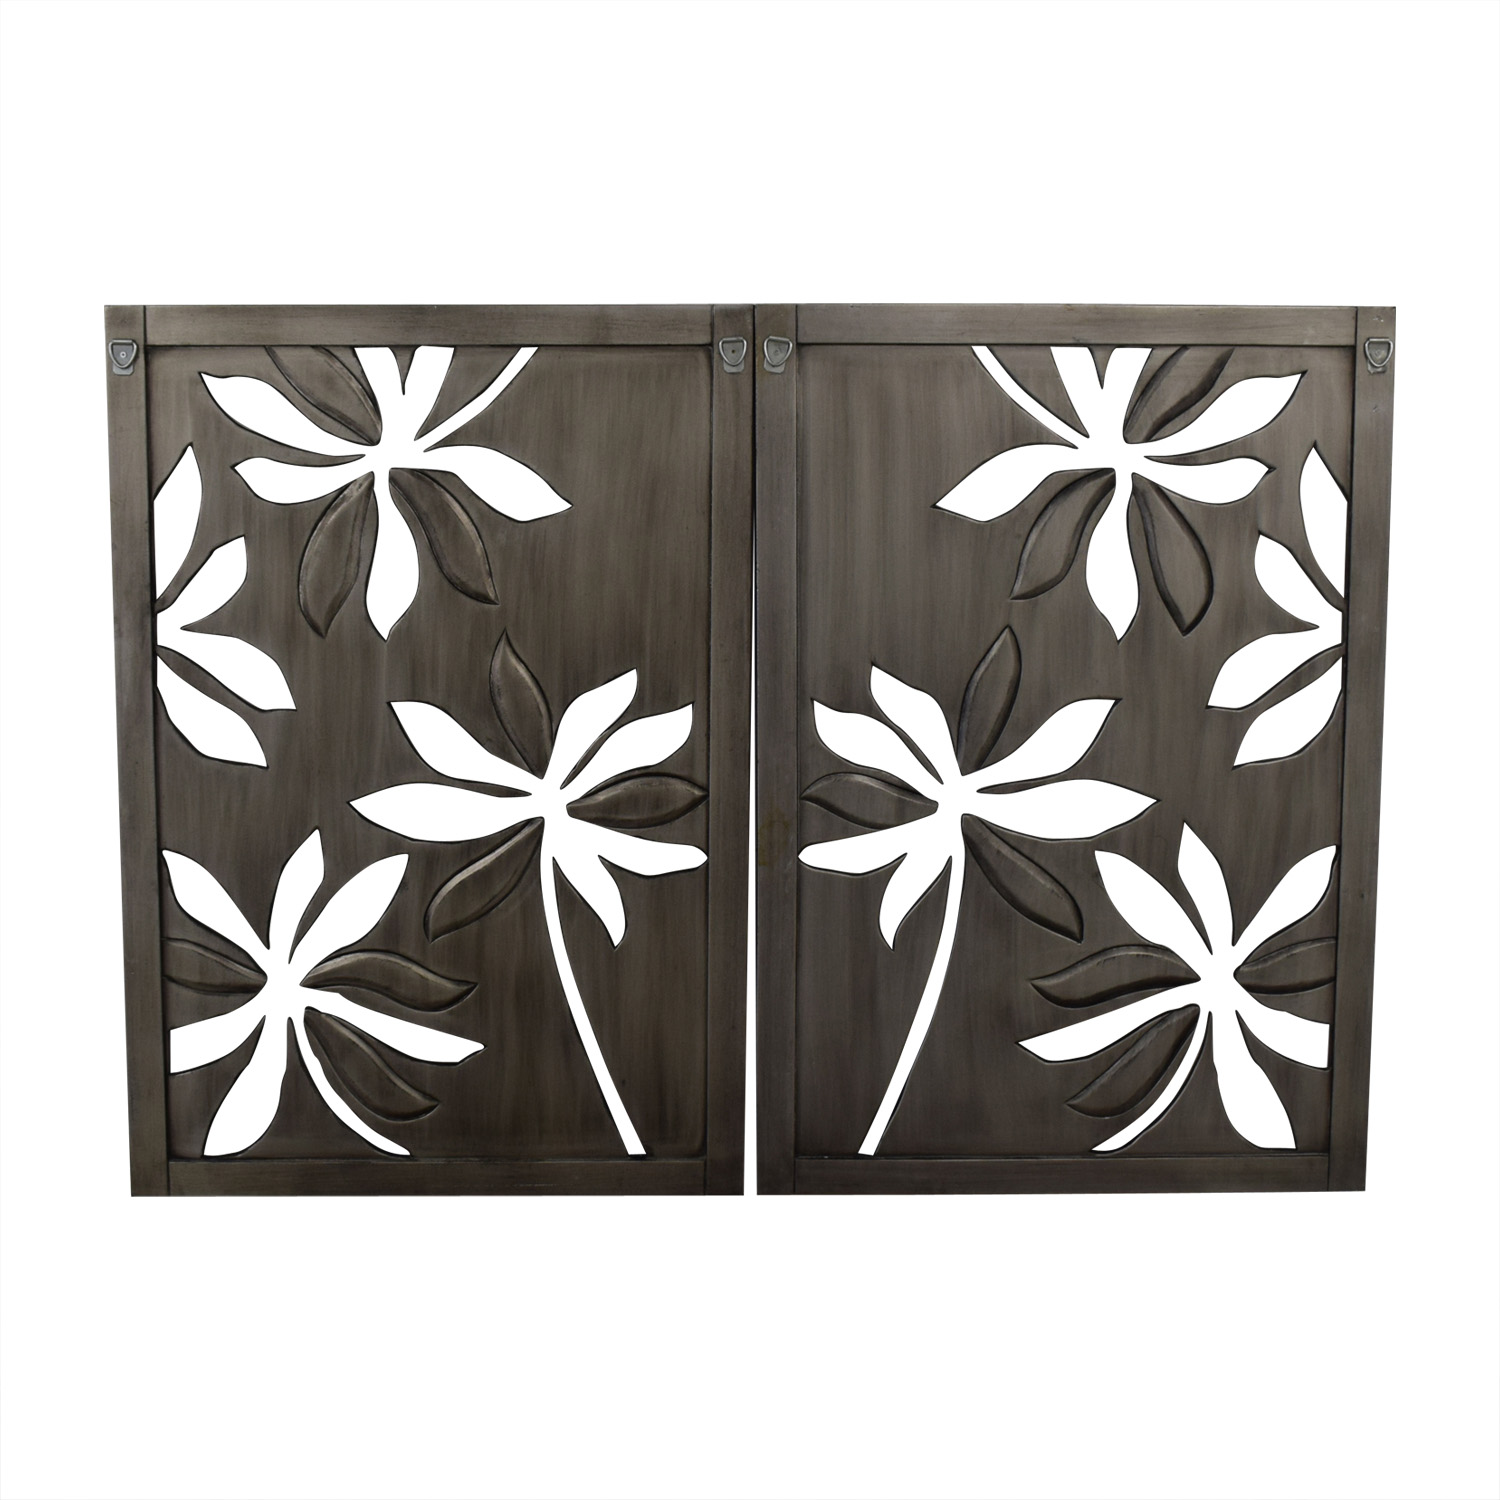 Pier 1 Pier 1 Open Carved Floral Flower Wall Art nyc